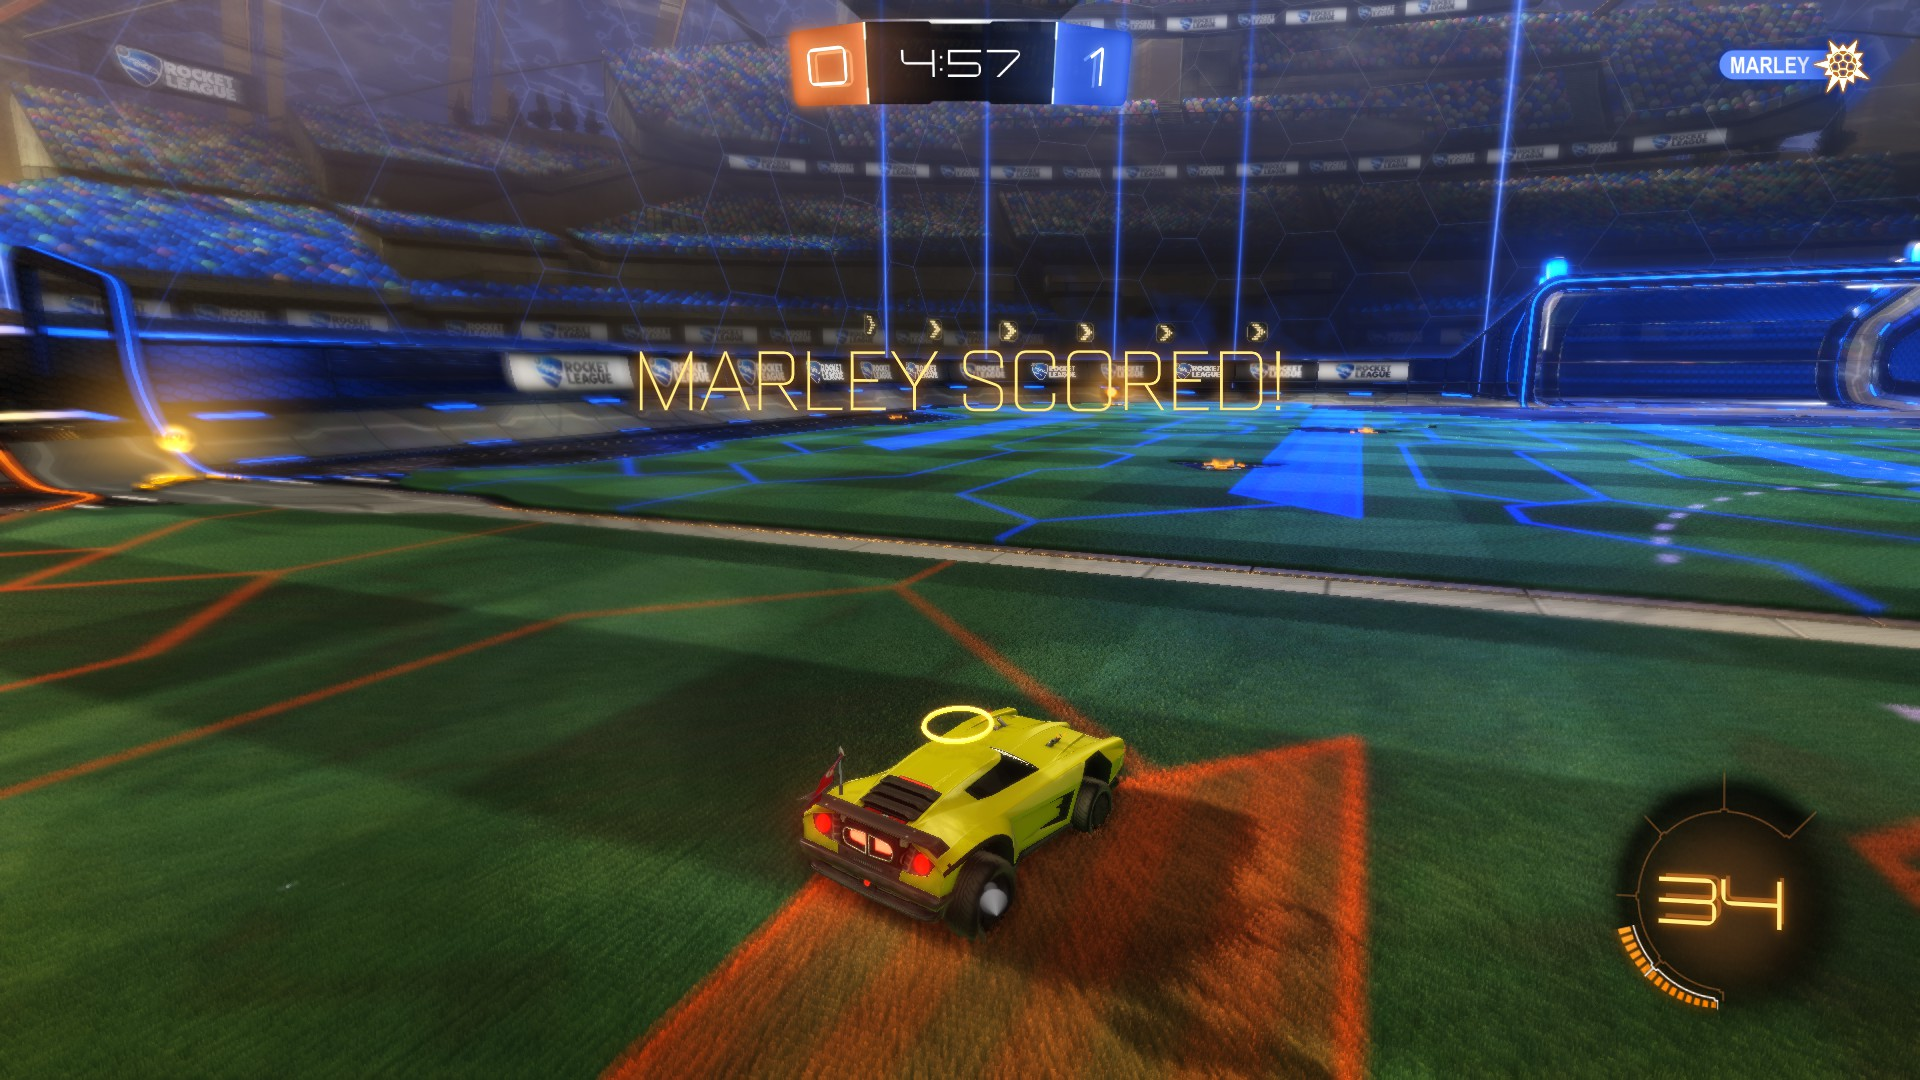 Rocket League on an APU - The AMD A8-7670K APU Review: Aiming for